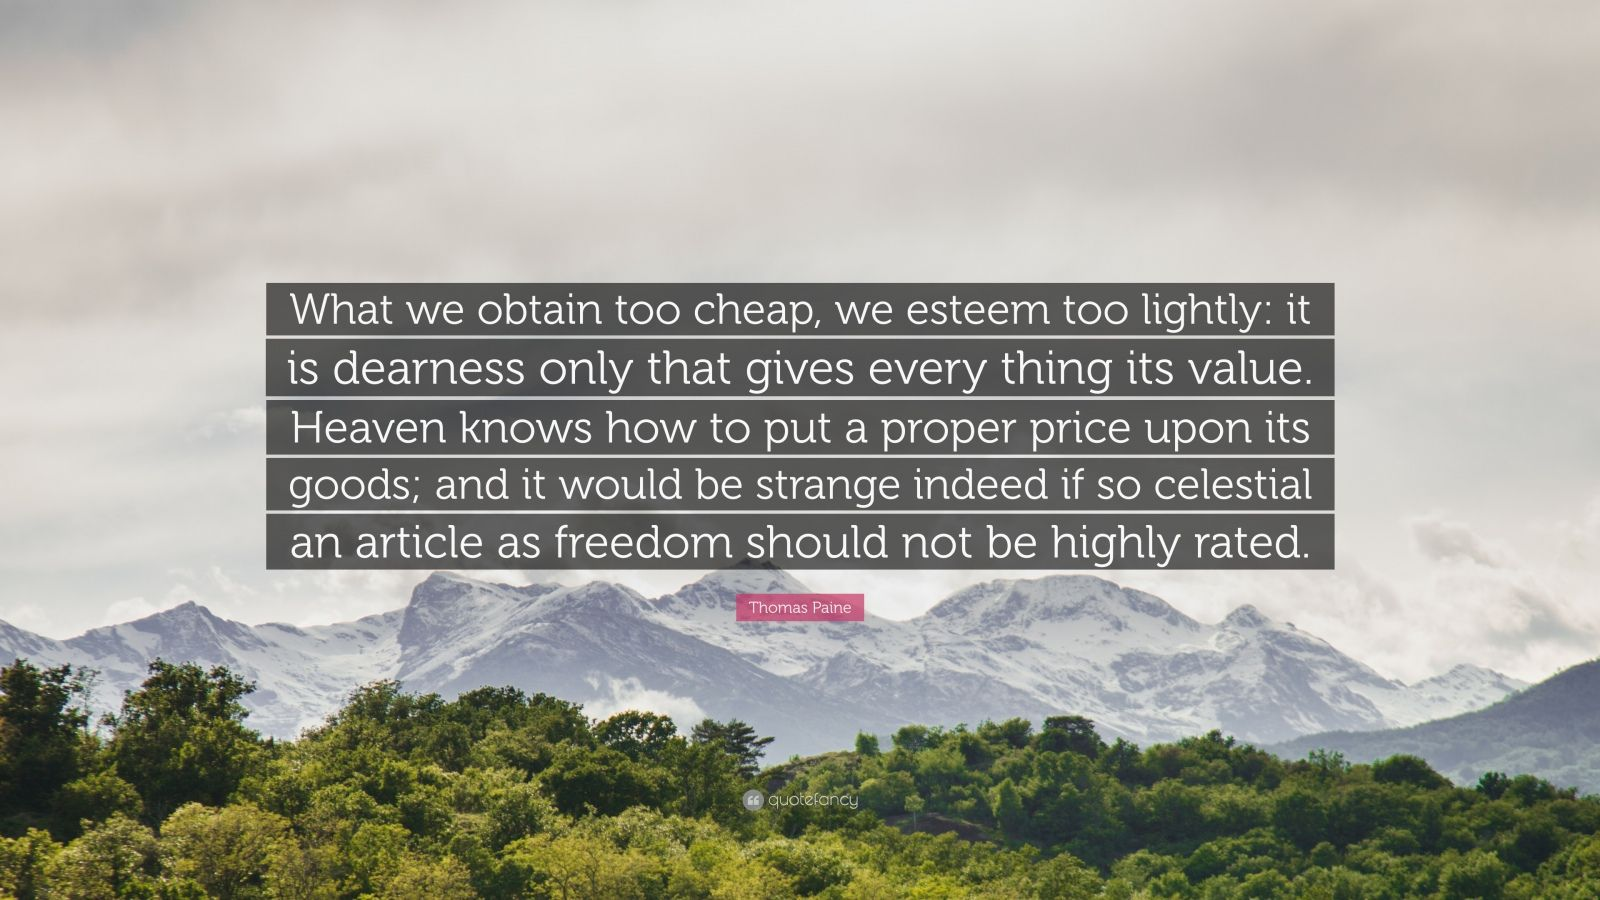 """Thomas Paine Quote: """"What we obtain too cheap, we esteem too lightly: it is dearness only that gives every thing its value. Heaven knows how to put a proper price upon its goods; and it would be strange indeed if so celestial an article as freedom should not be highly rated."""""""